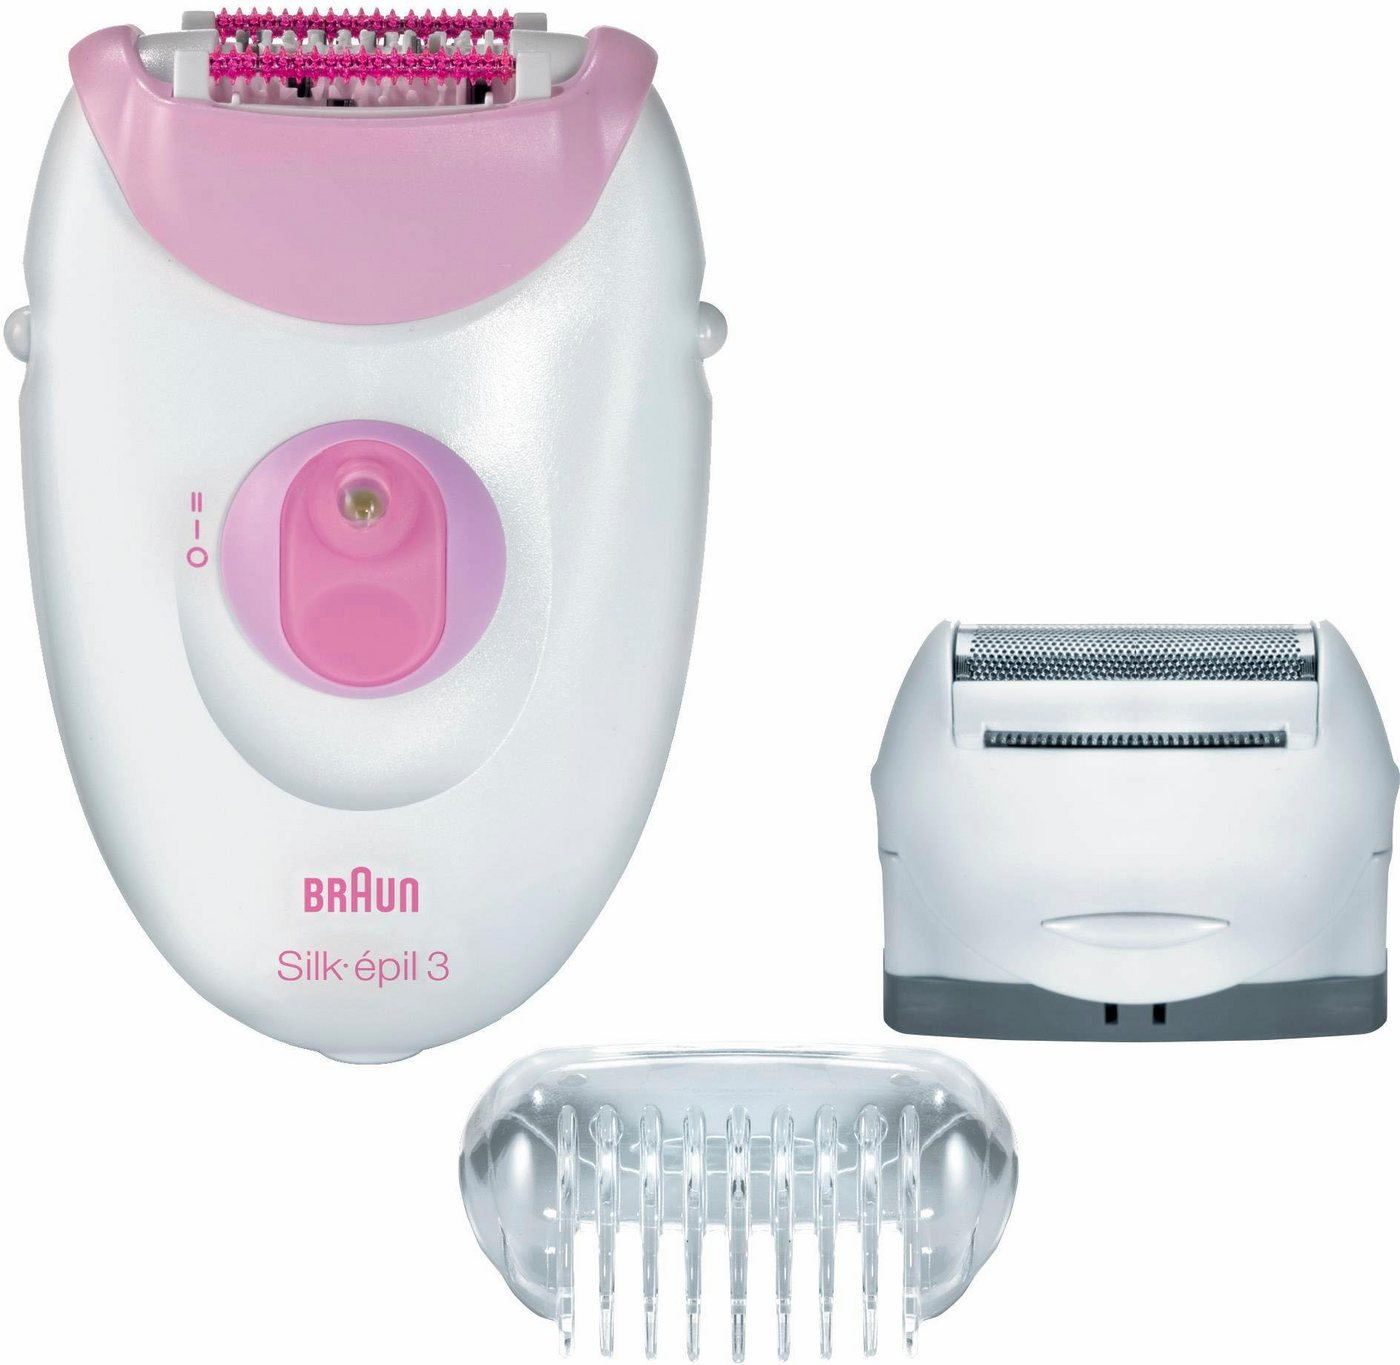 BRAUN Epilator Silk-épil 3 Legs & Body 3270